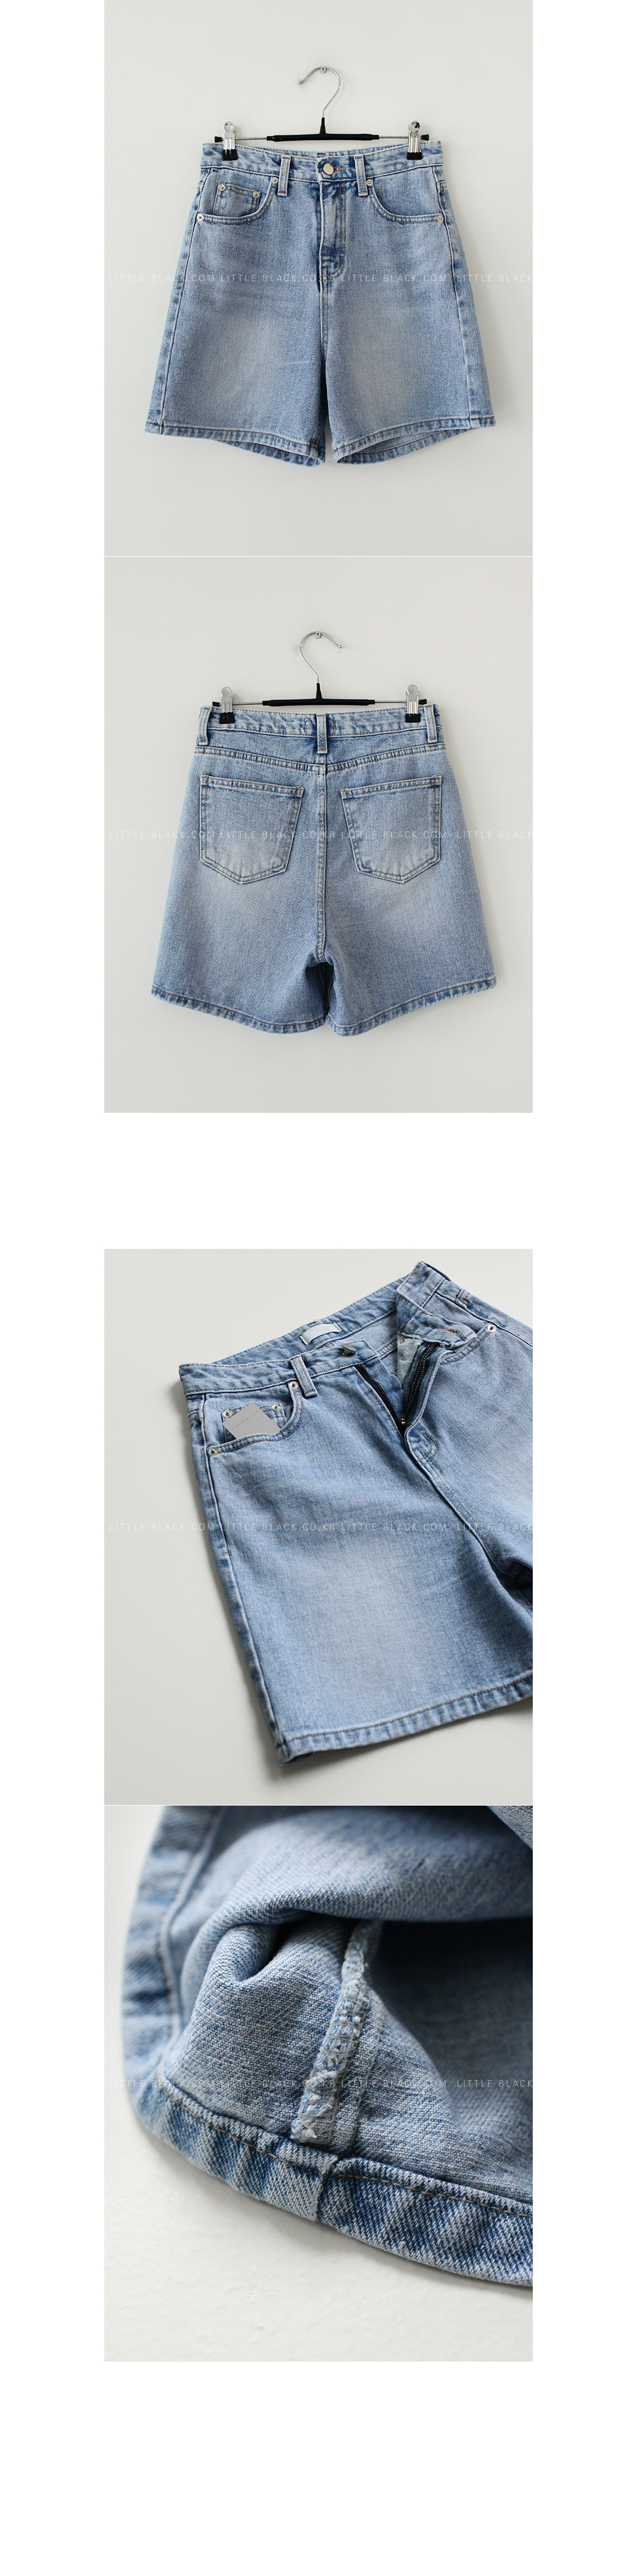 Tobacco Stitch Denim Shorts|